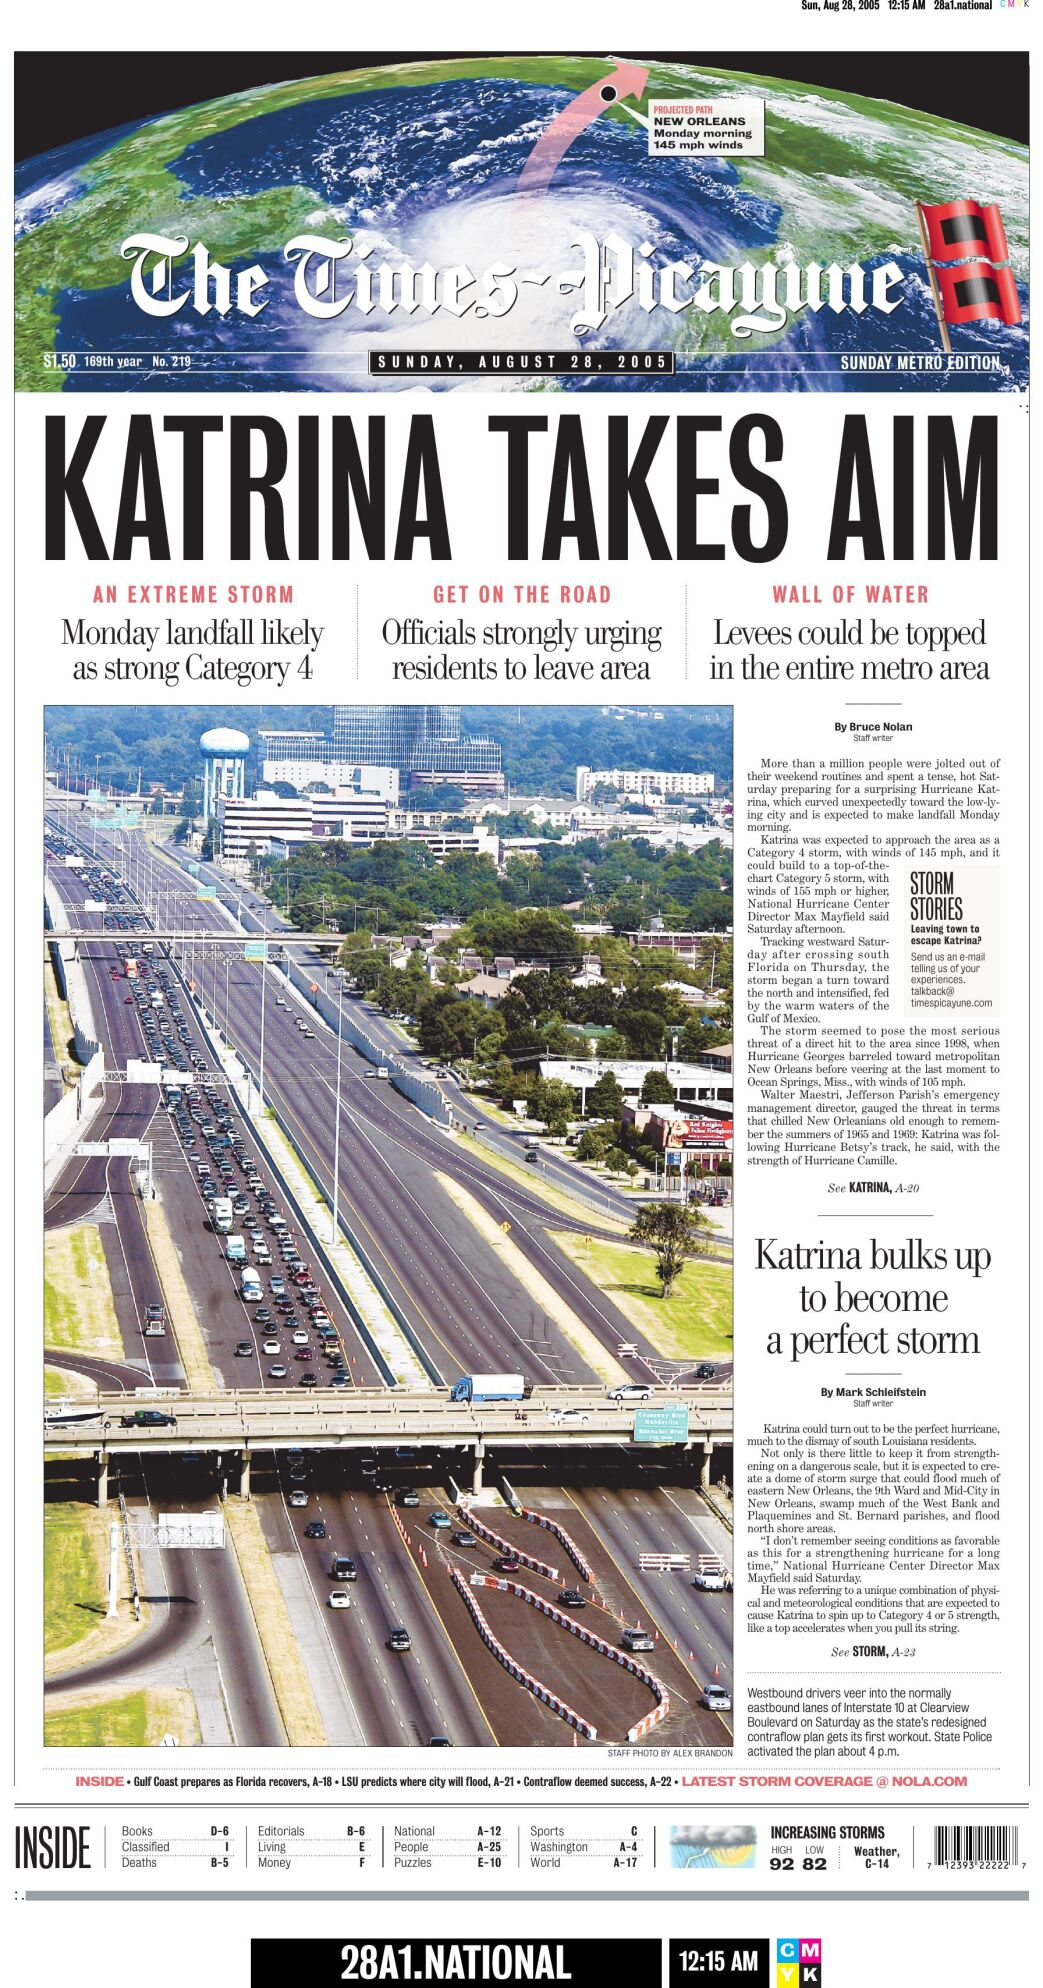 2005 Times-Picayune front page: Katrina takes aim